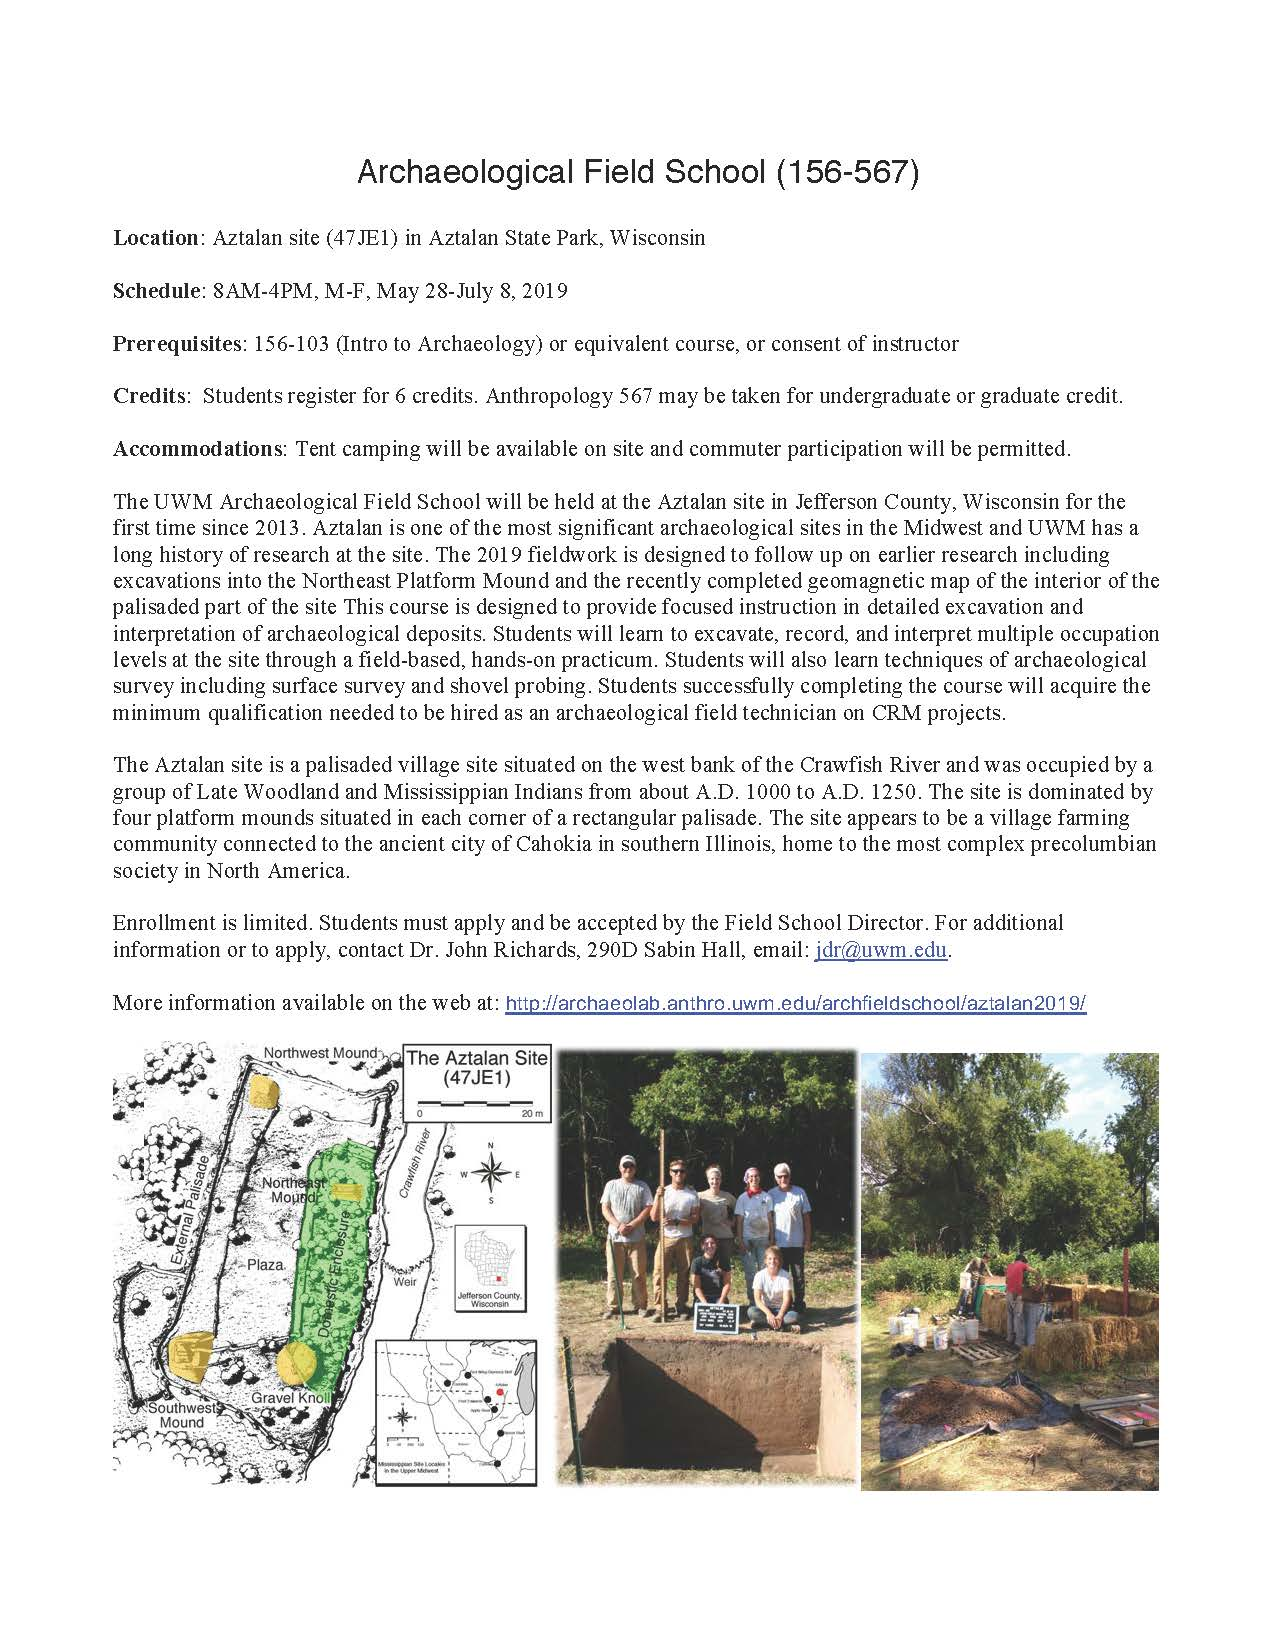 2019 Aztalan Field School Flyer.jpg